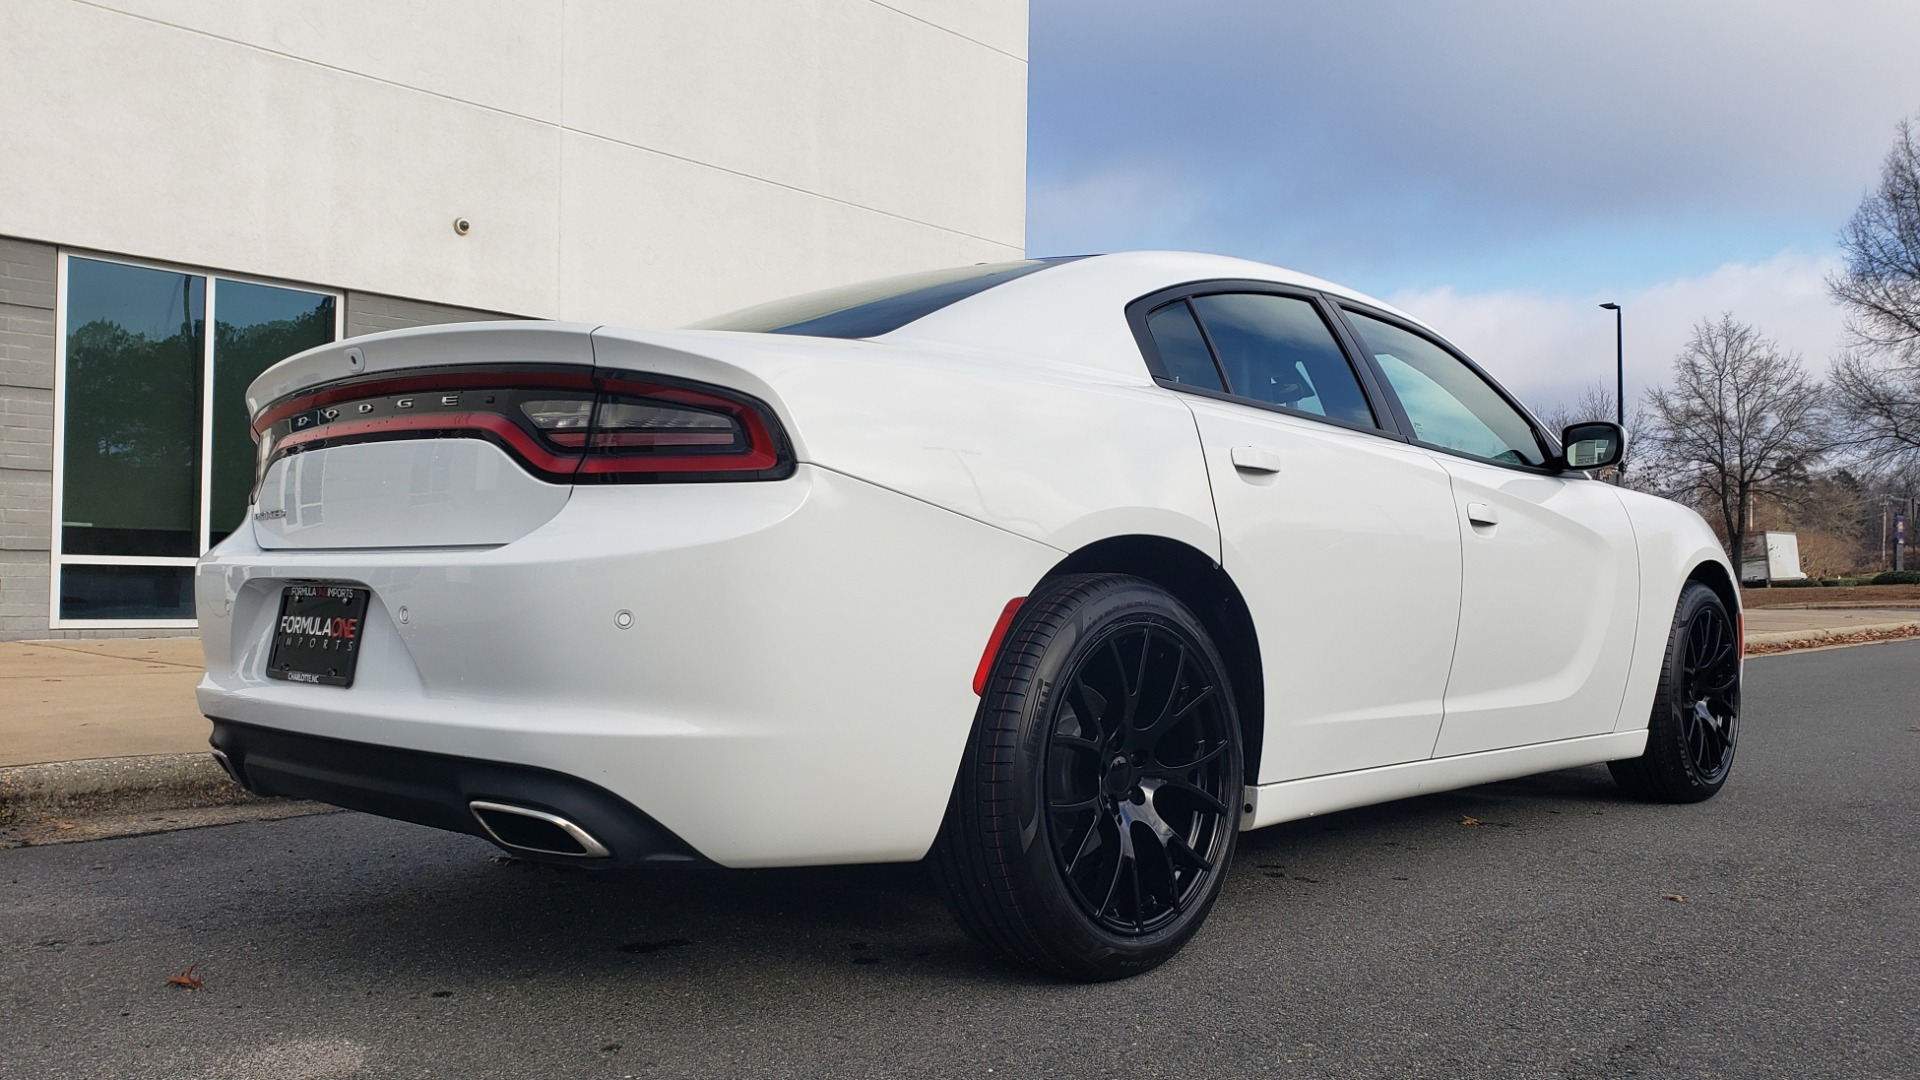 Used 2020 Dodge CHARGER SXT / RWD / V6 / 8-SPD AUTO / LTHR / HTD STS / SUNROOF / REARVIEW for sale $25,995 at Formula Imports in Charlotte NC 28227 6